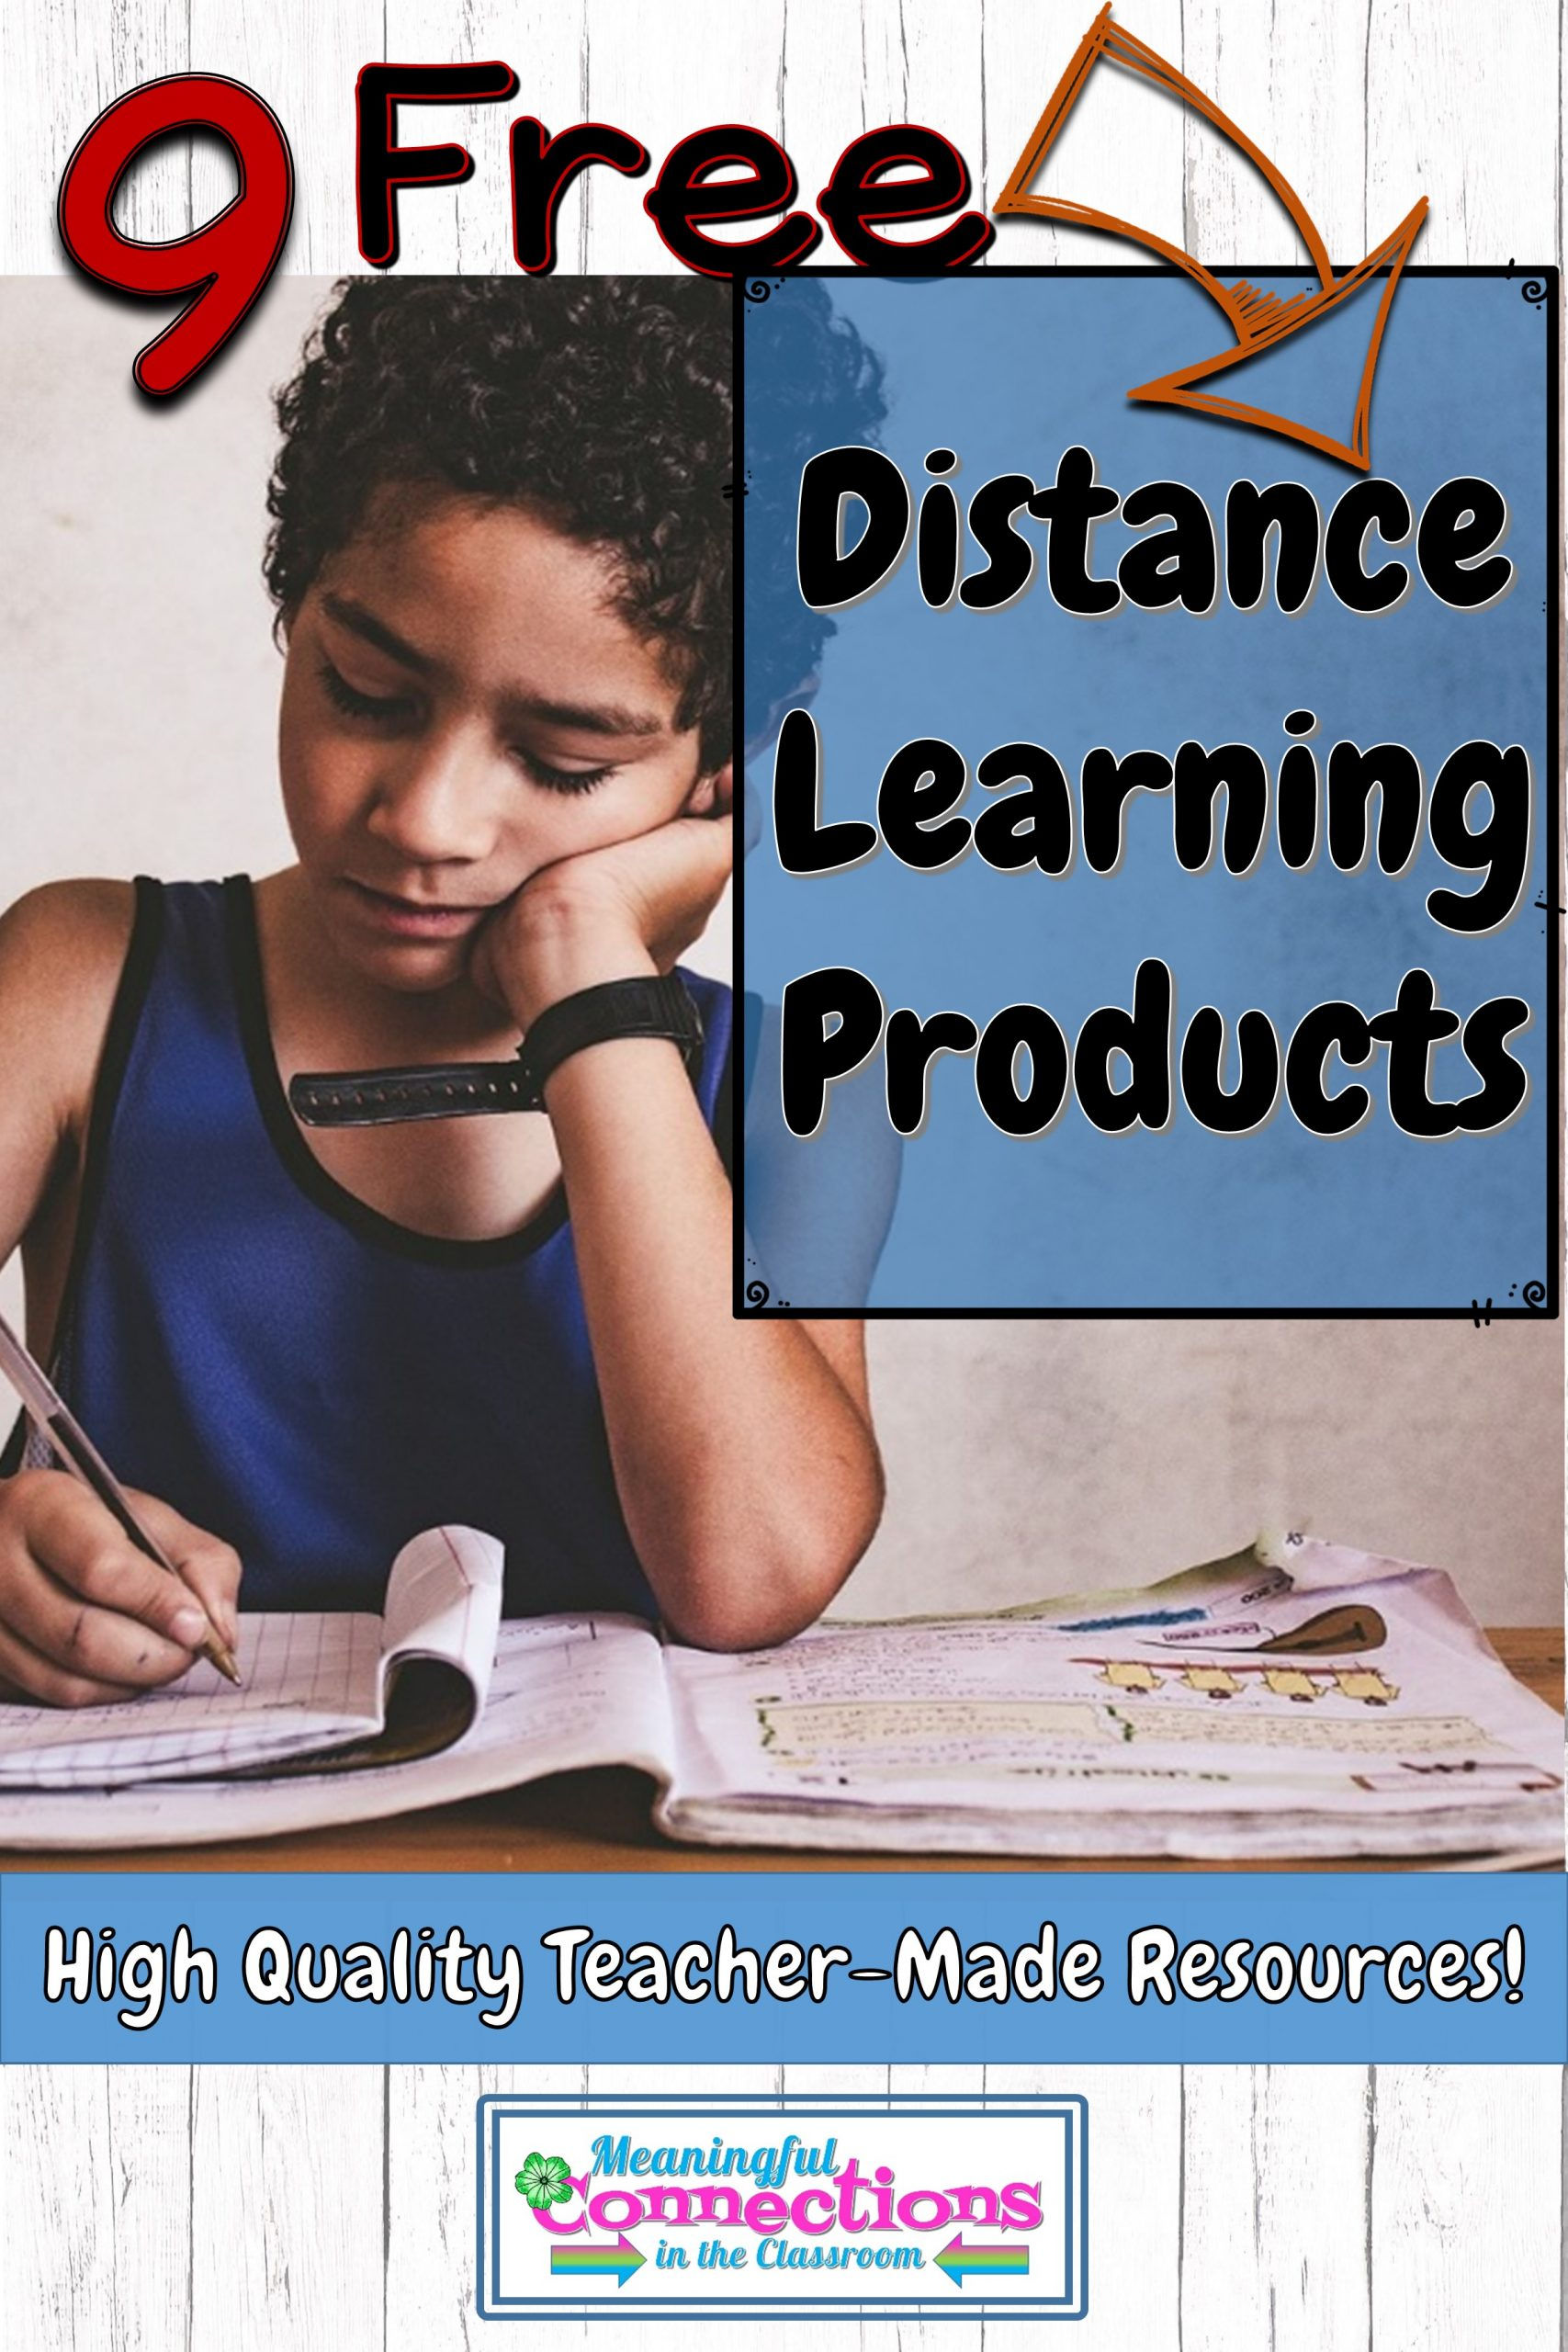 9 Free Distance Learning Products